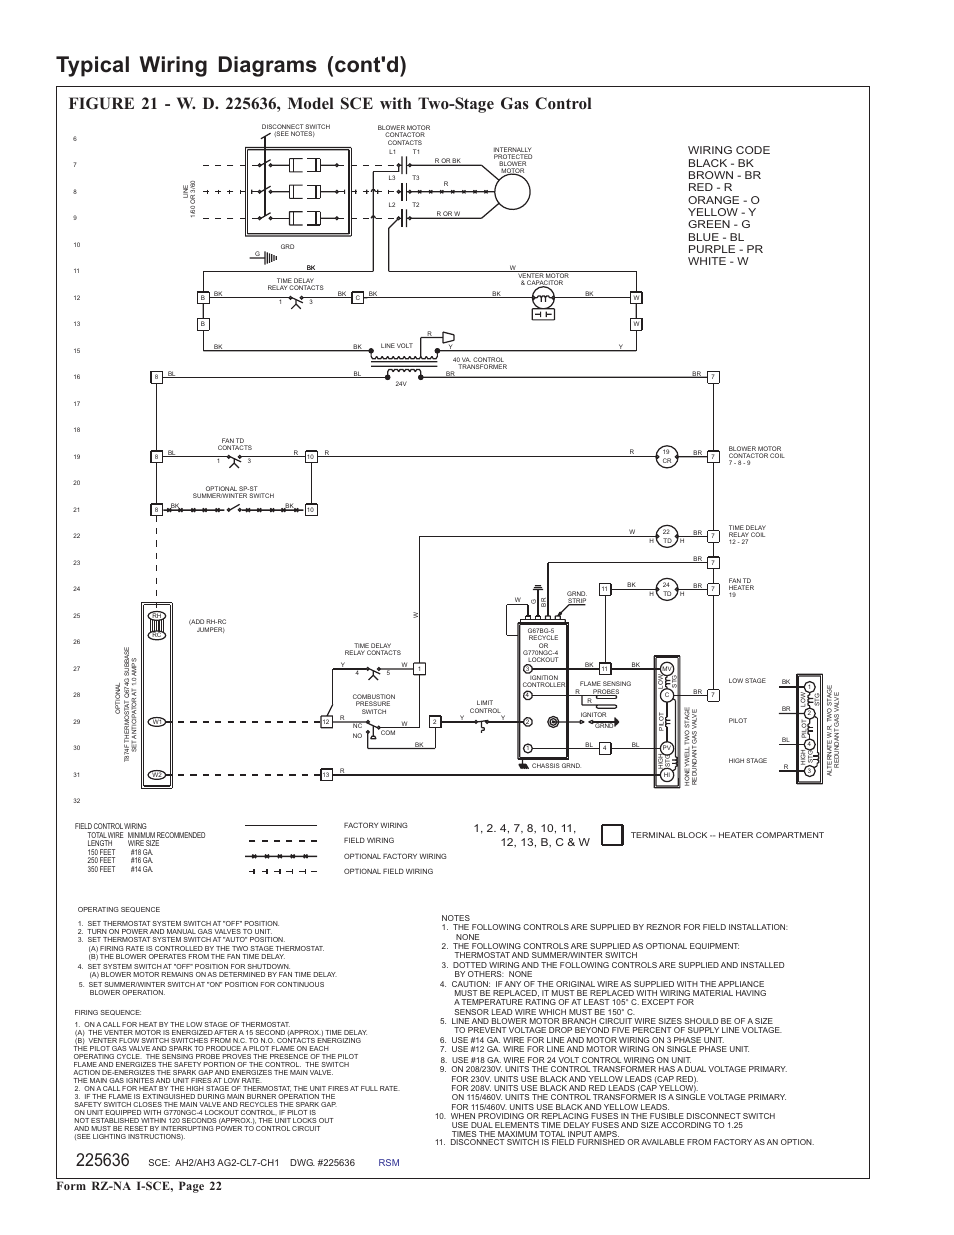 reznor sce unit installation manual page22 typical wiring diagrams (cont'd), form rz na i sce, page 22 field controls power venter wiring diagram at edmiracle.co